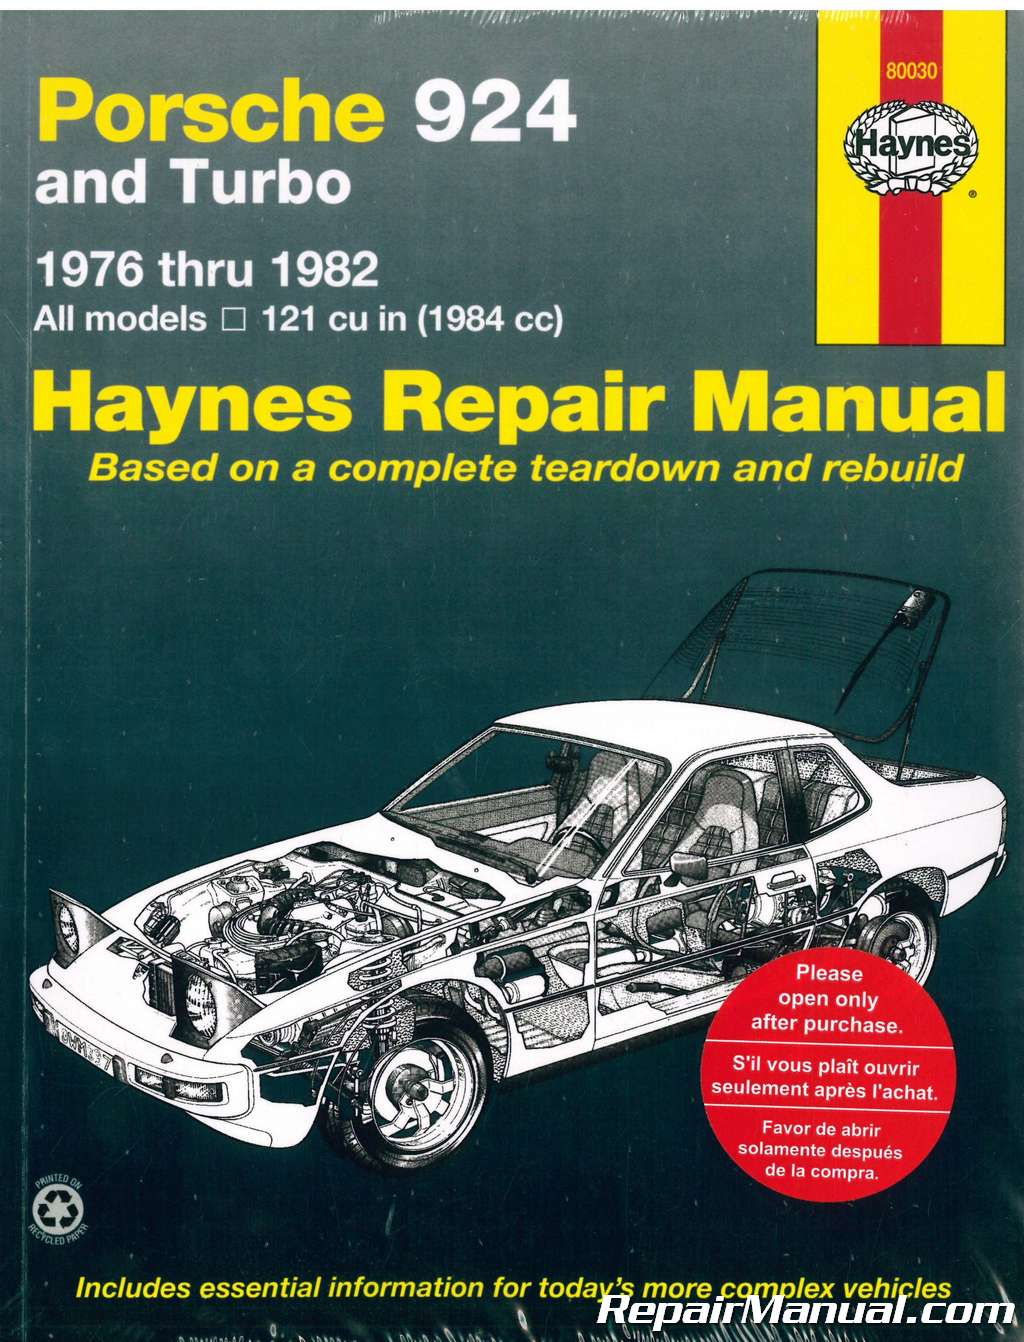 haynes porsche 924 1976 1982 auto repair manual rh repairmanual com Porsche Workshop Manual PDF Briggs and Stratton Repair Manual